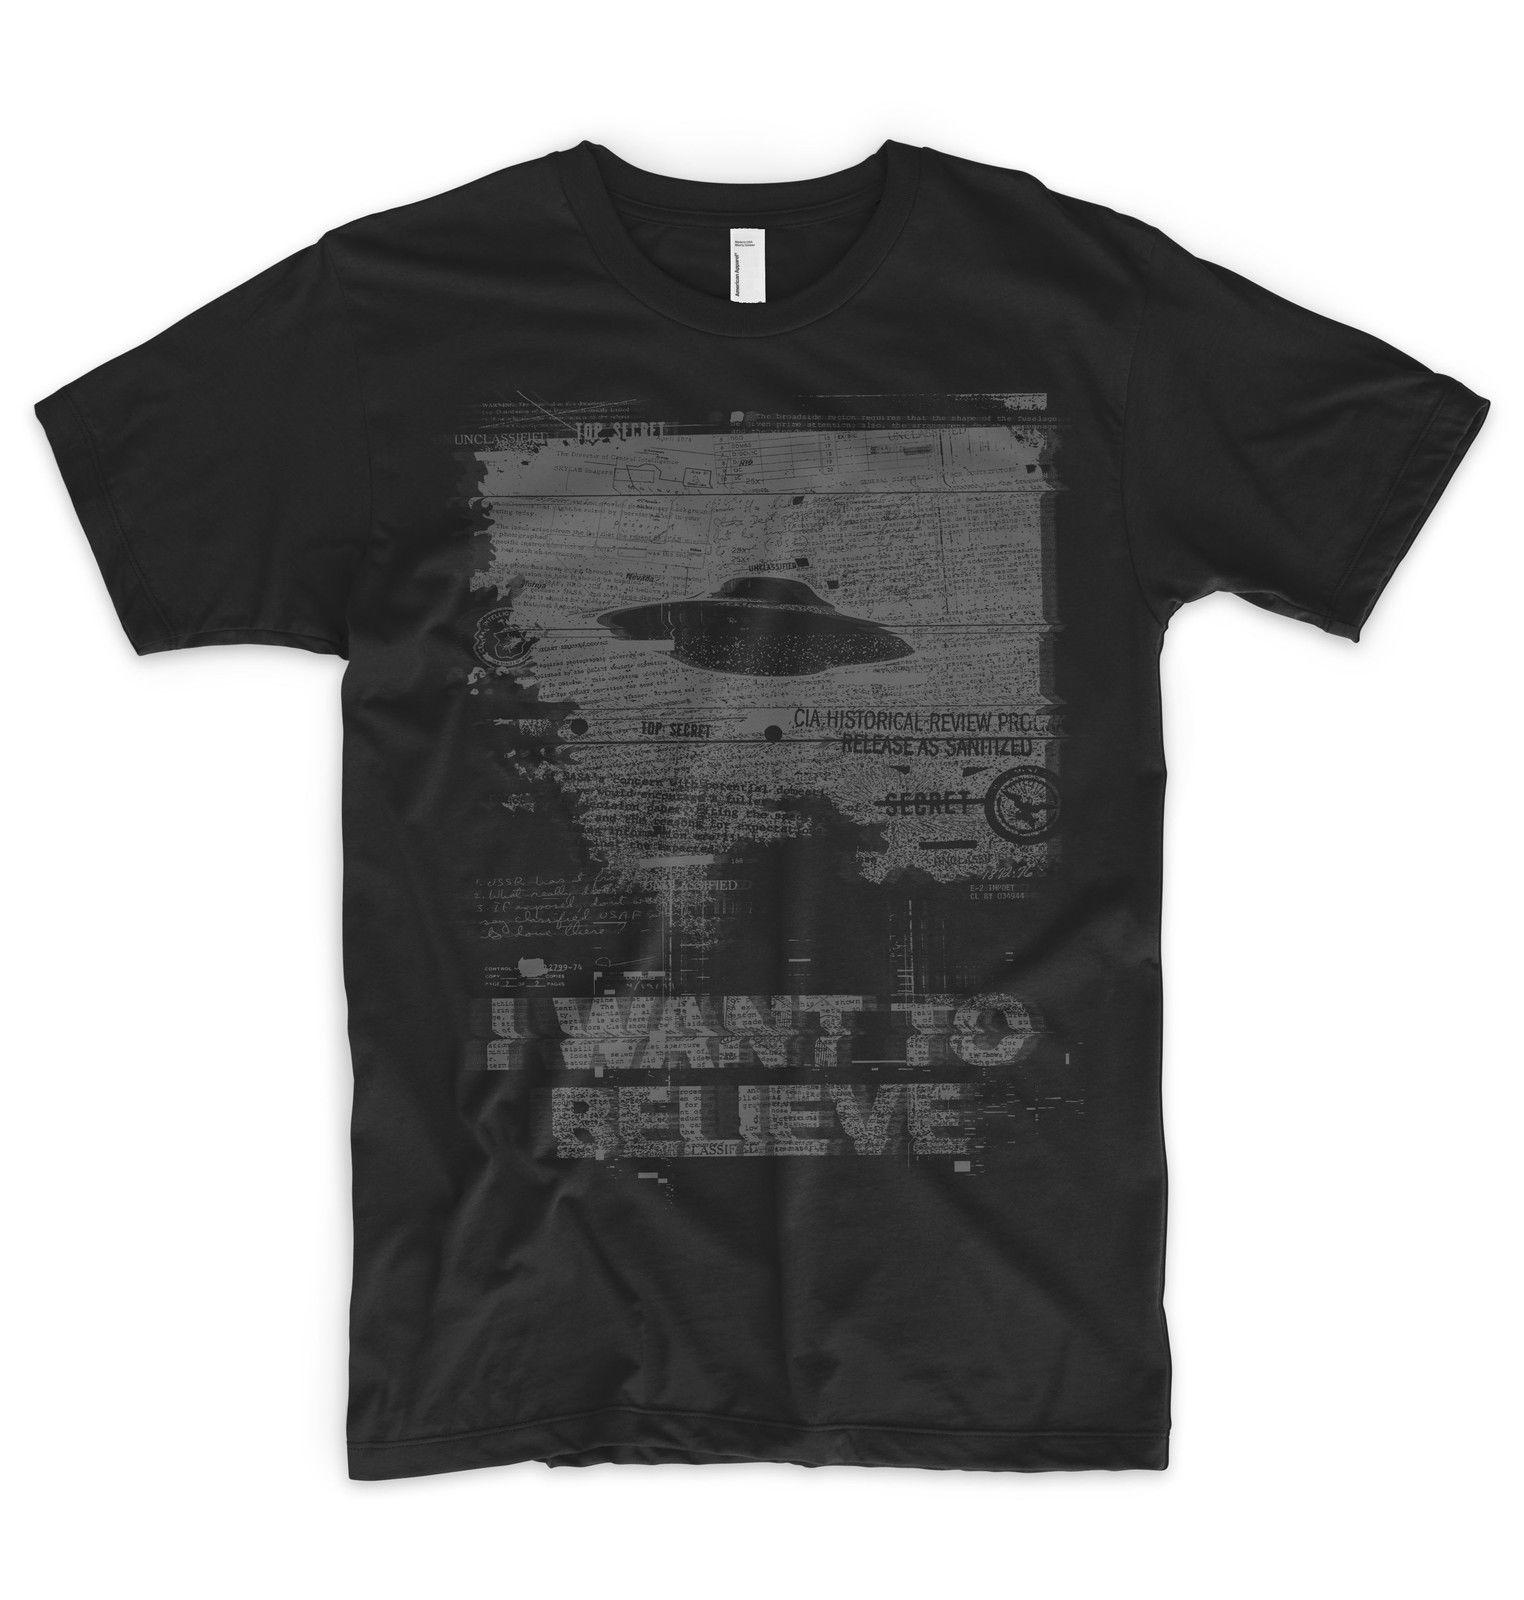 f14e08b642663 I Want To Believe T Shirt Alien UFO Area 51 Roswell X Files Space Ship  Greys Online Shopping For T Shirt Silly Tee Shirts From Bstdhgate03,  $11.01| DHgate.